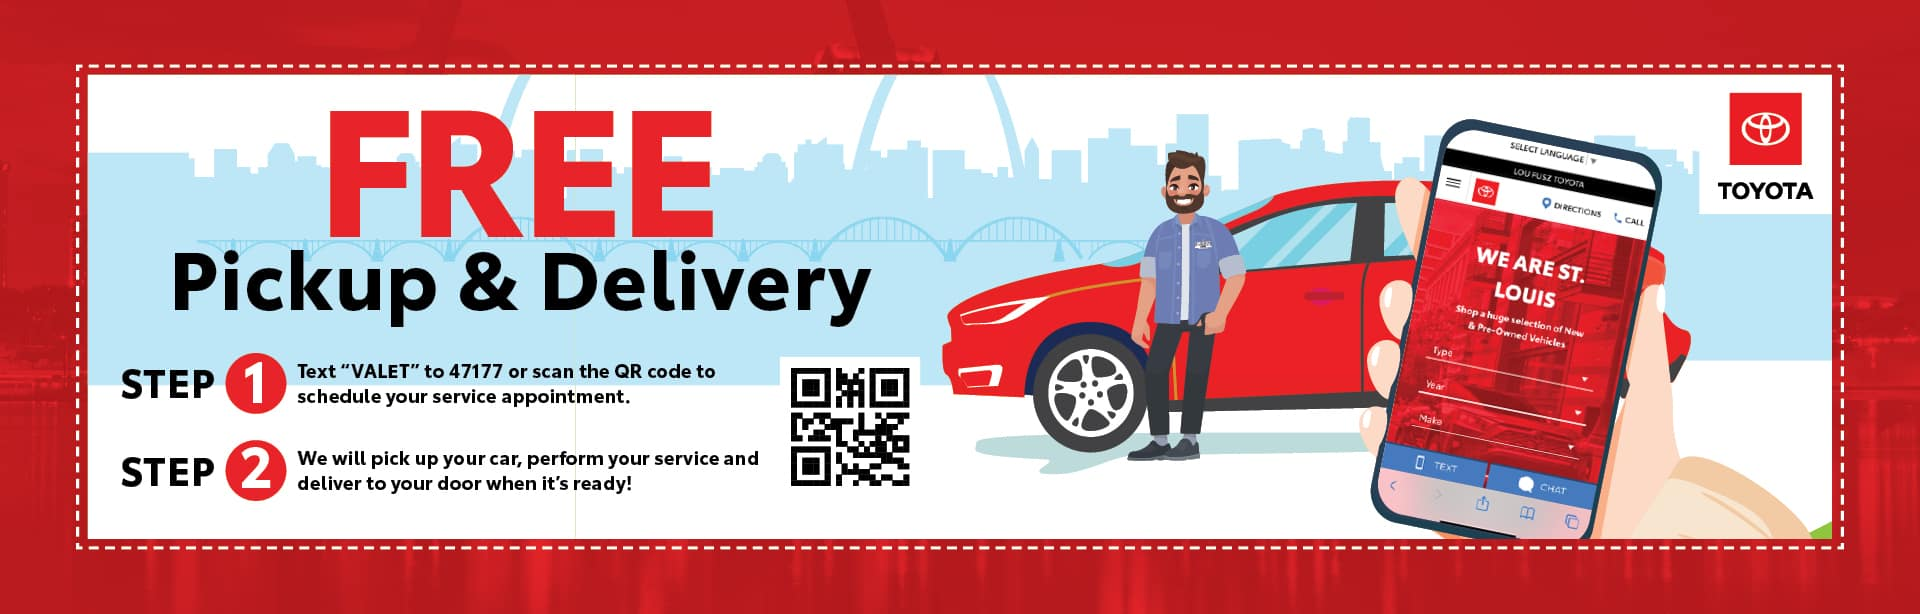 Free pick up & delivery